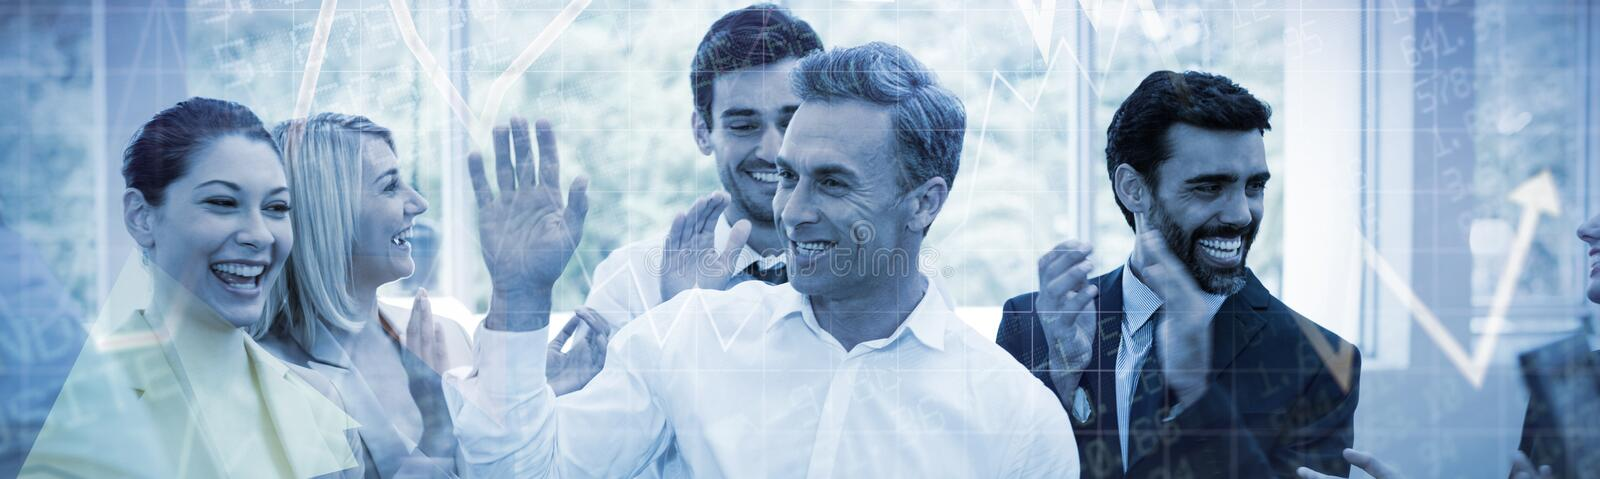 Composite image of stocks and shares. Stocks and shares against happy business executives giving high five royalty free stock images